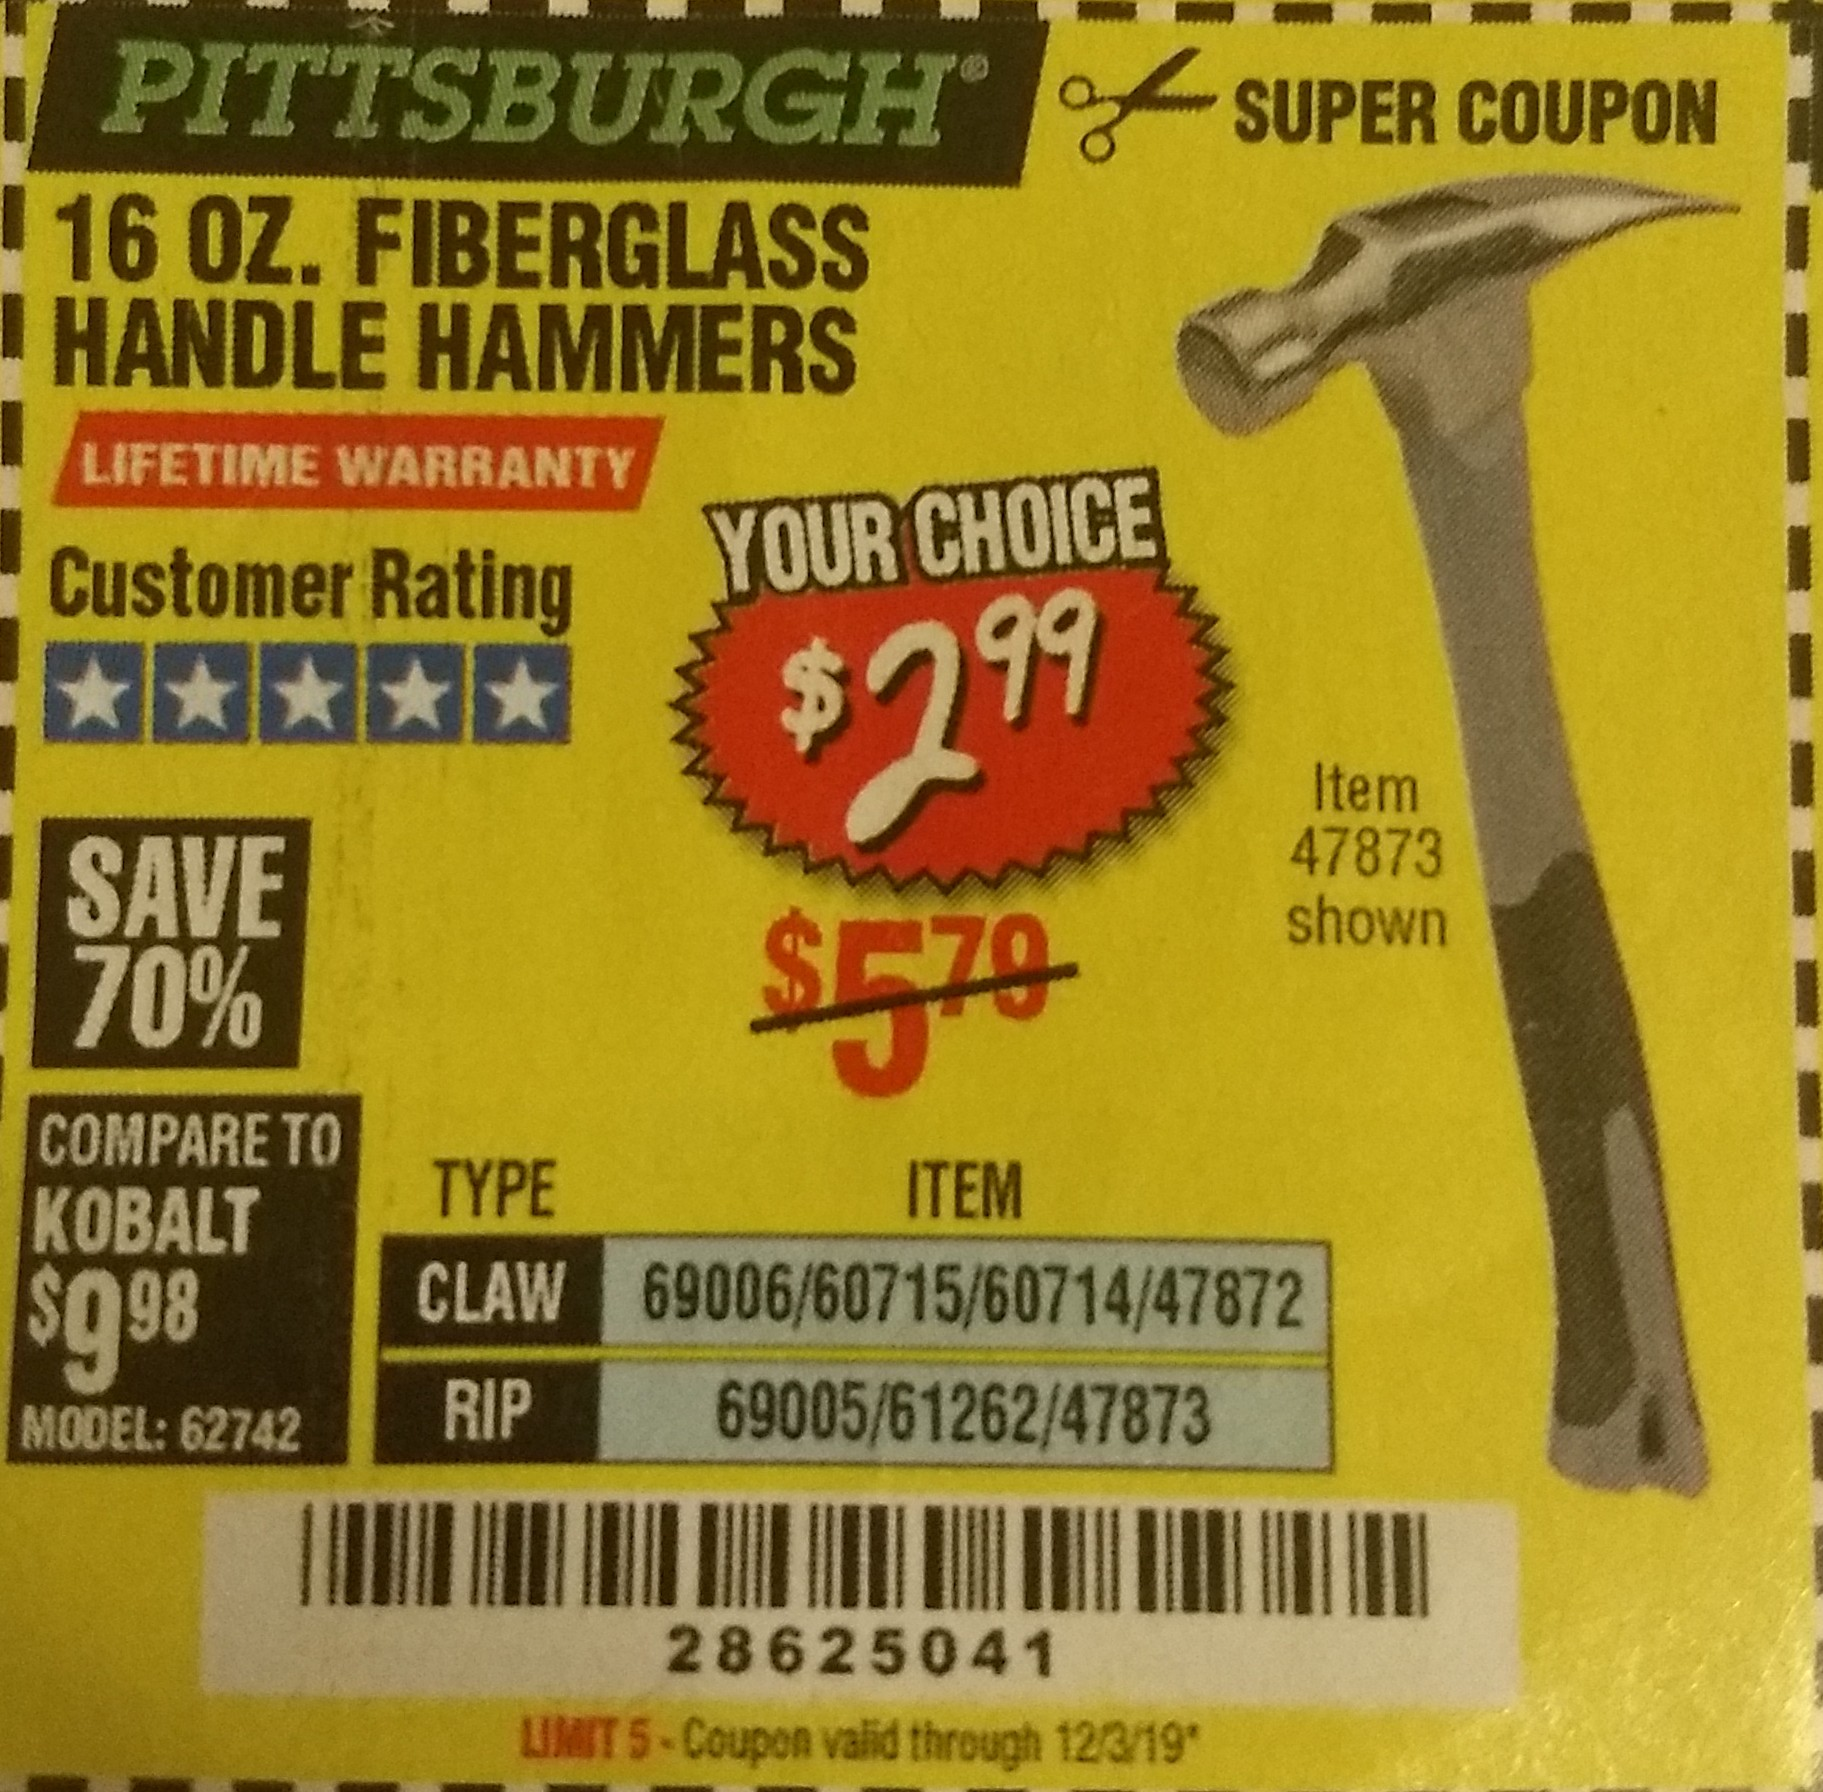 Harbor Freight 16 OZ. HAMMERS WITH FIBERGLASS HANDLE coupon